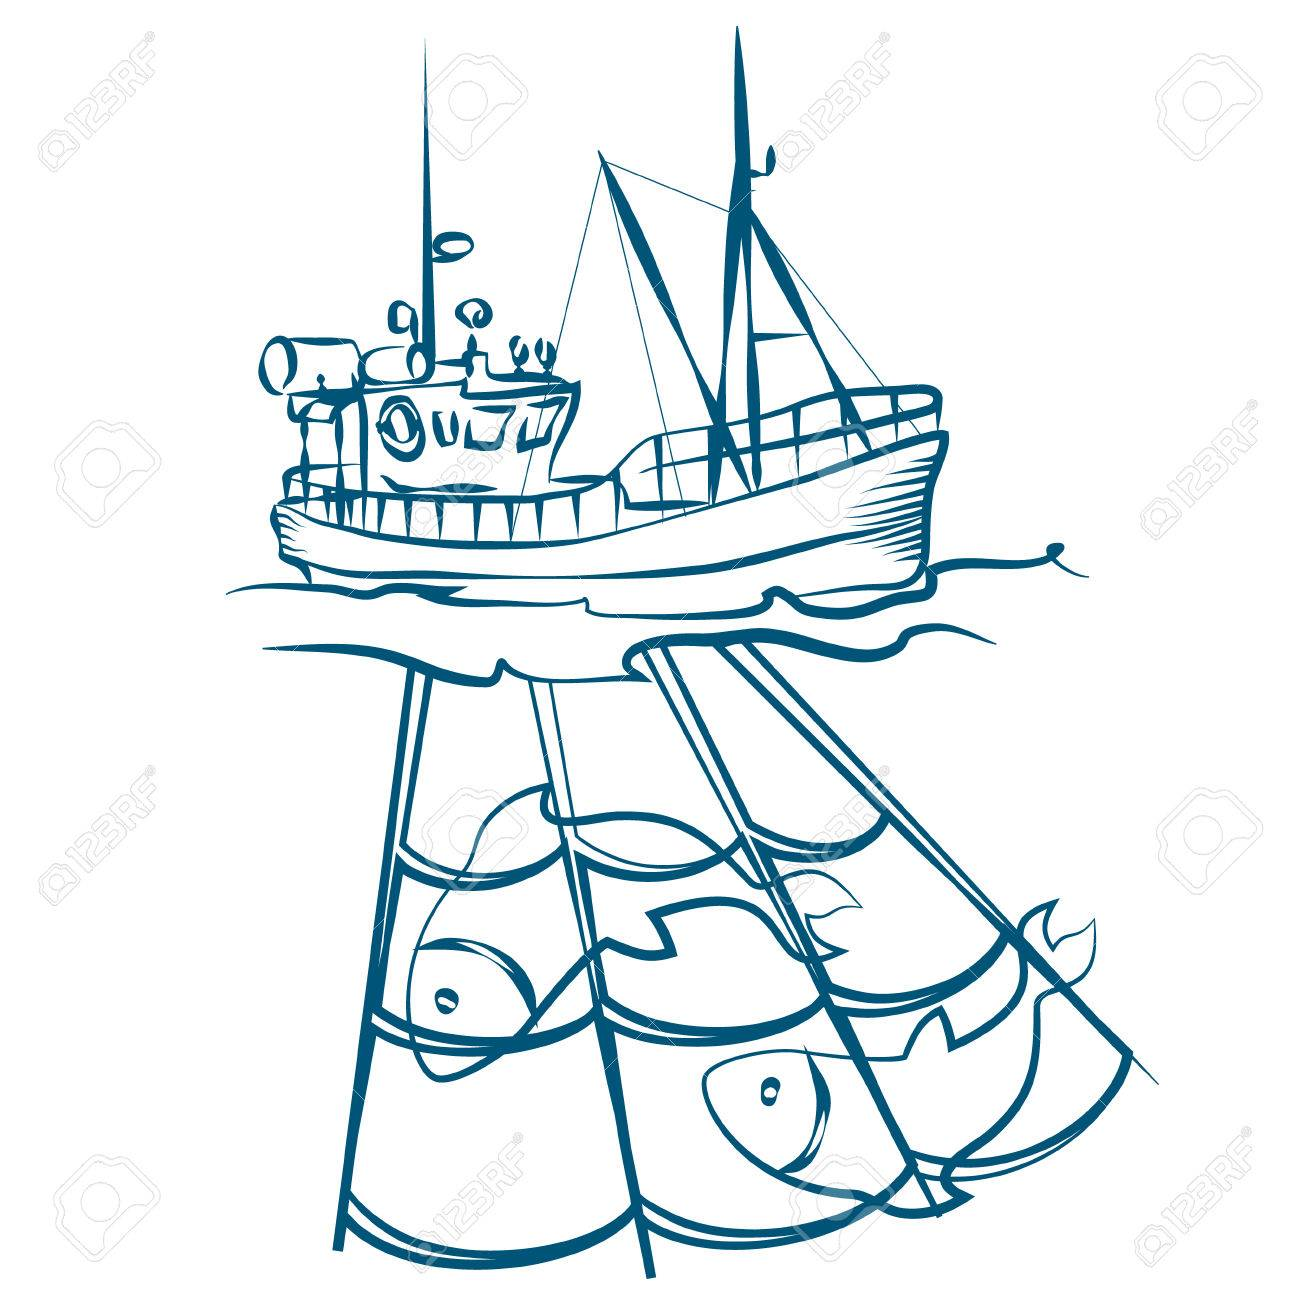 Fishing boat drawing at free for for How to draw a fishing boat